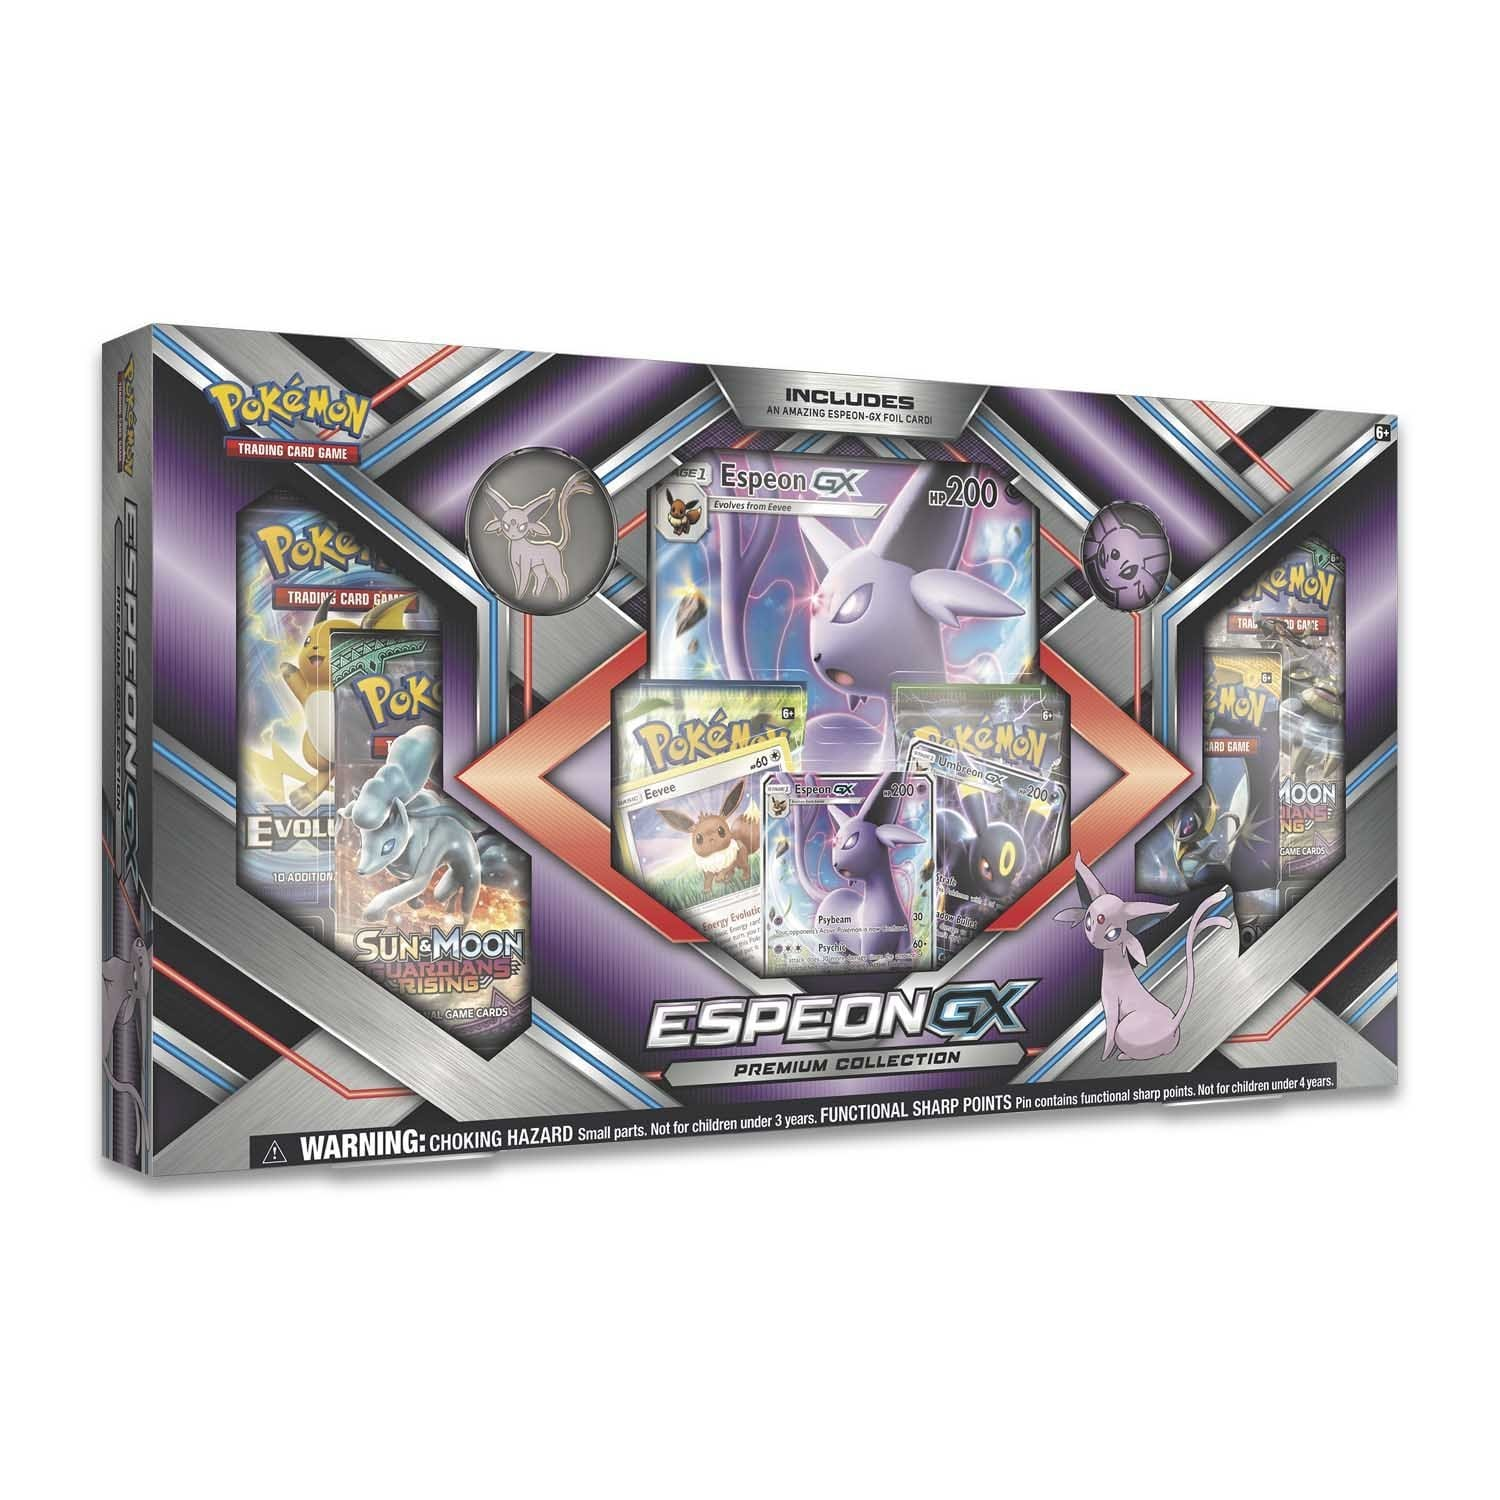 Pokemon Trading Card Game: Espeon-GX or Umbreon-GX Premium Collection Box Set (Chosen at Random) $9.99